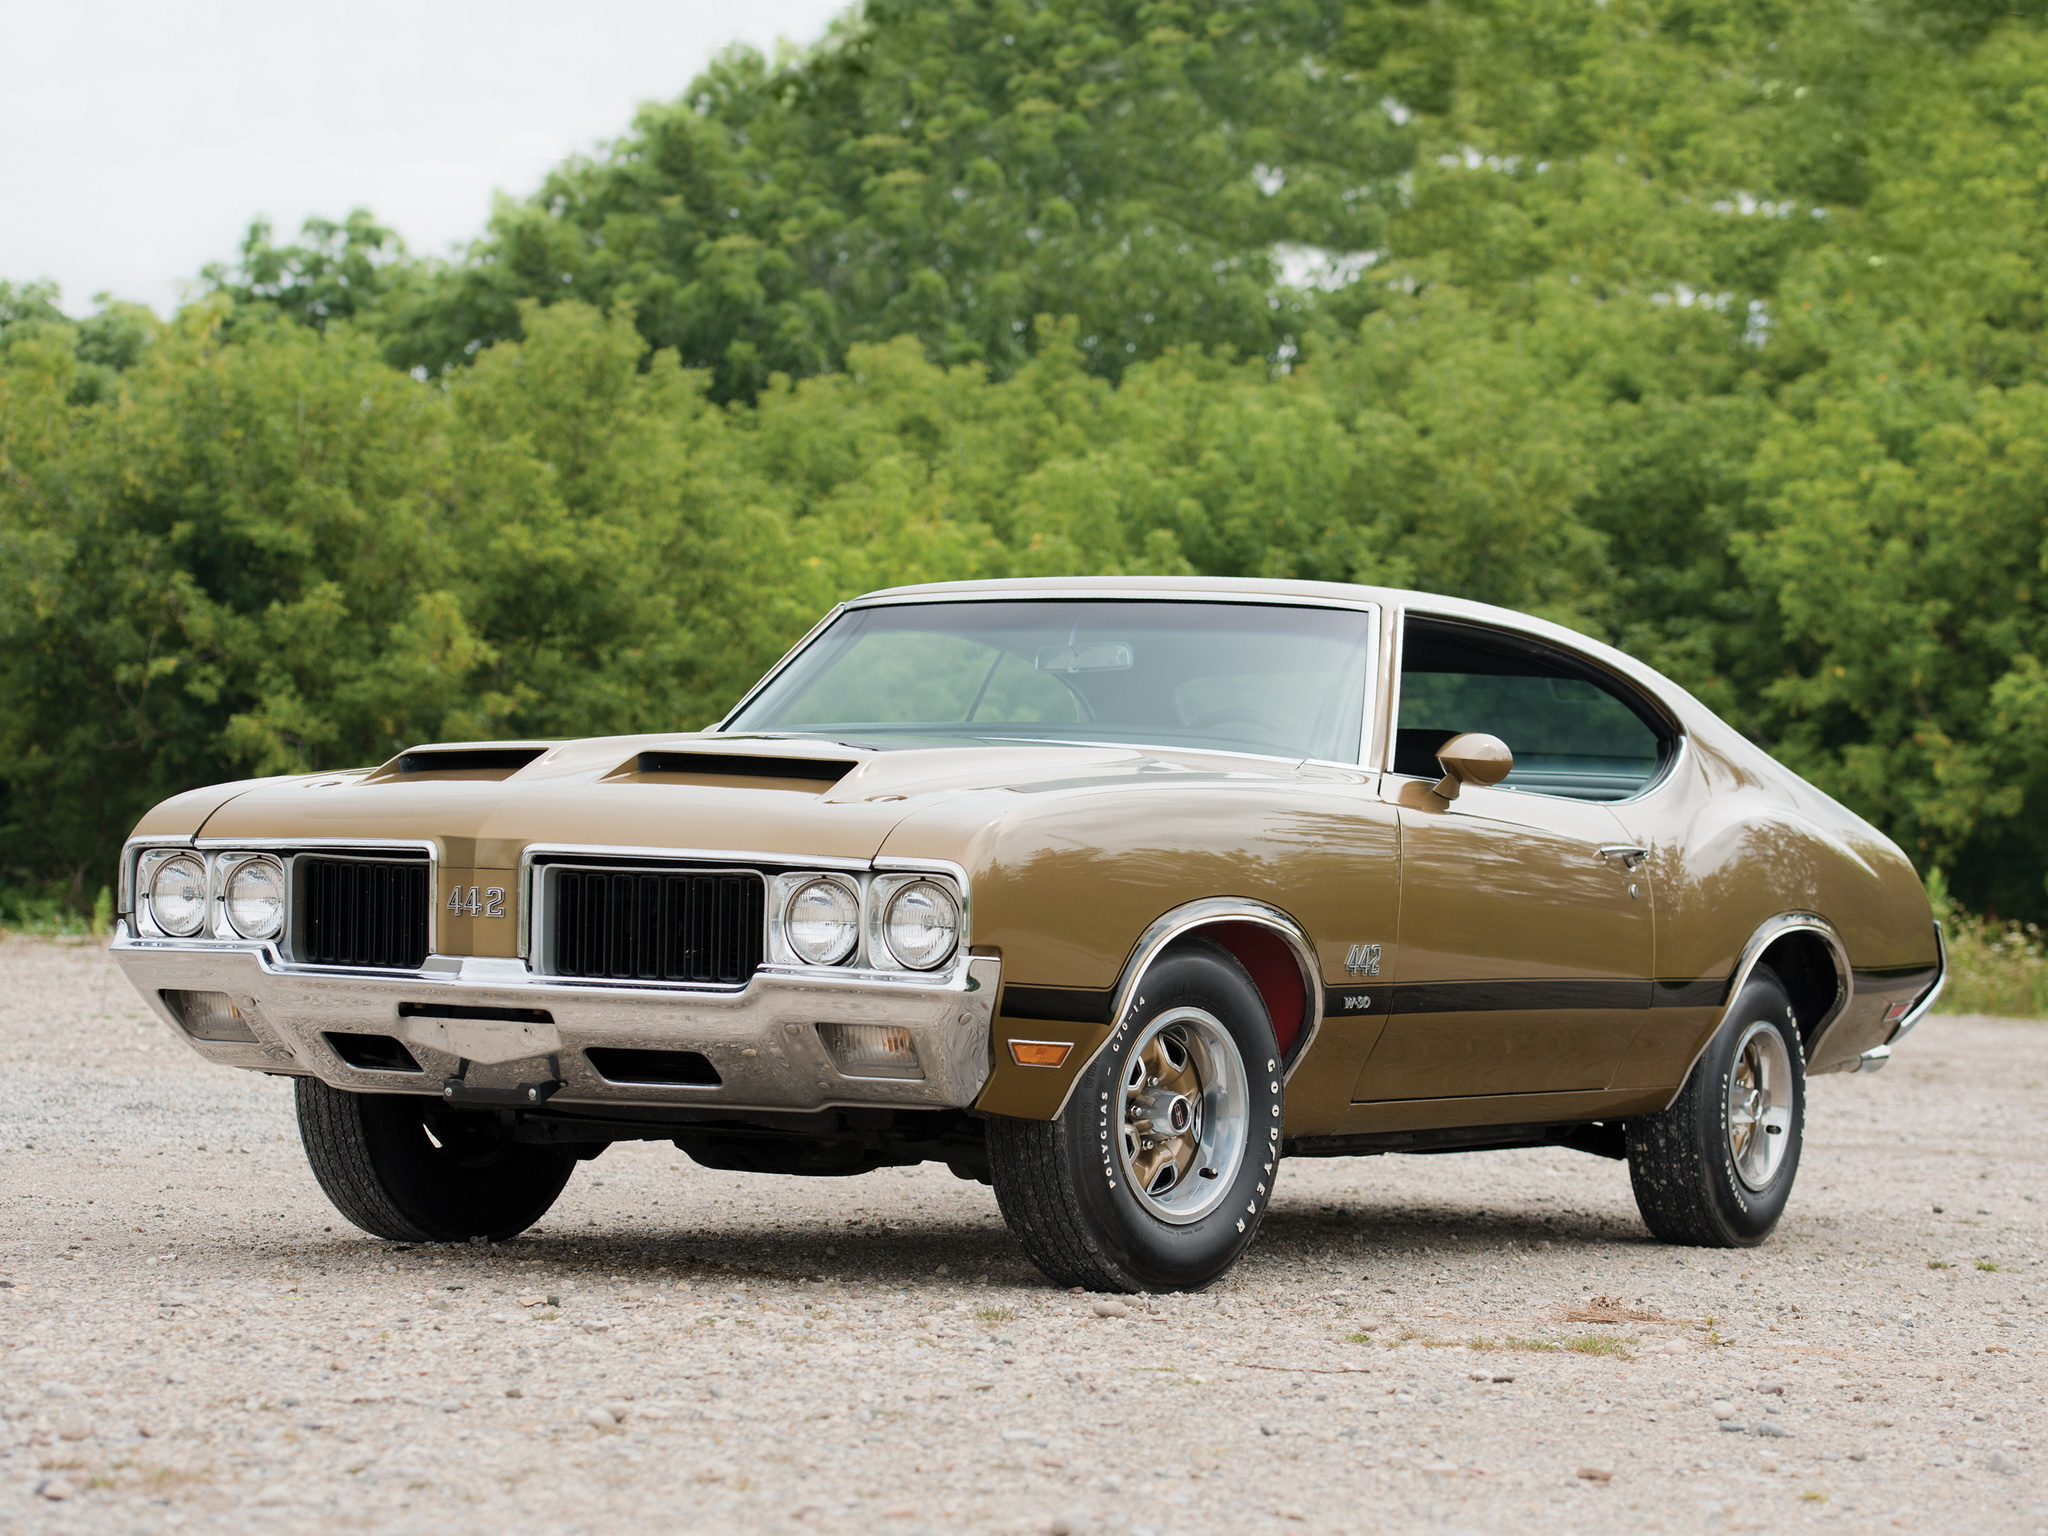 2048x1536 - Oldsmobile Wallpapers 30